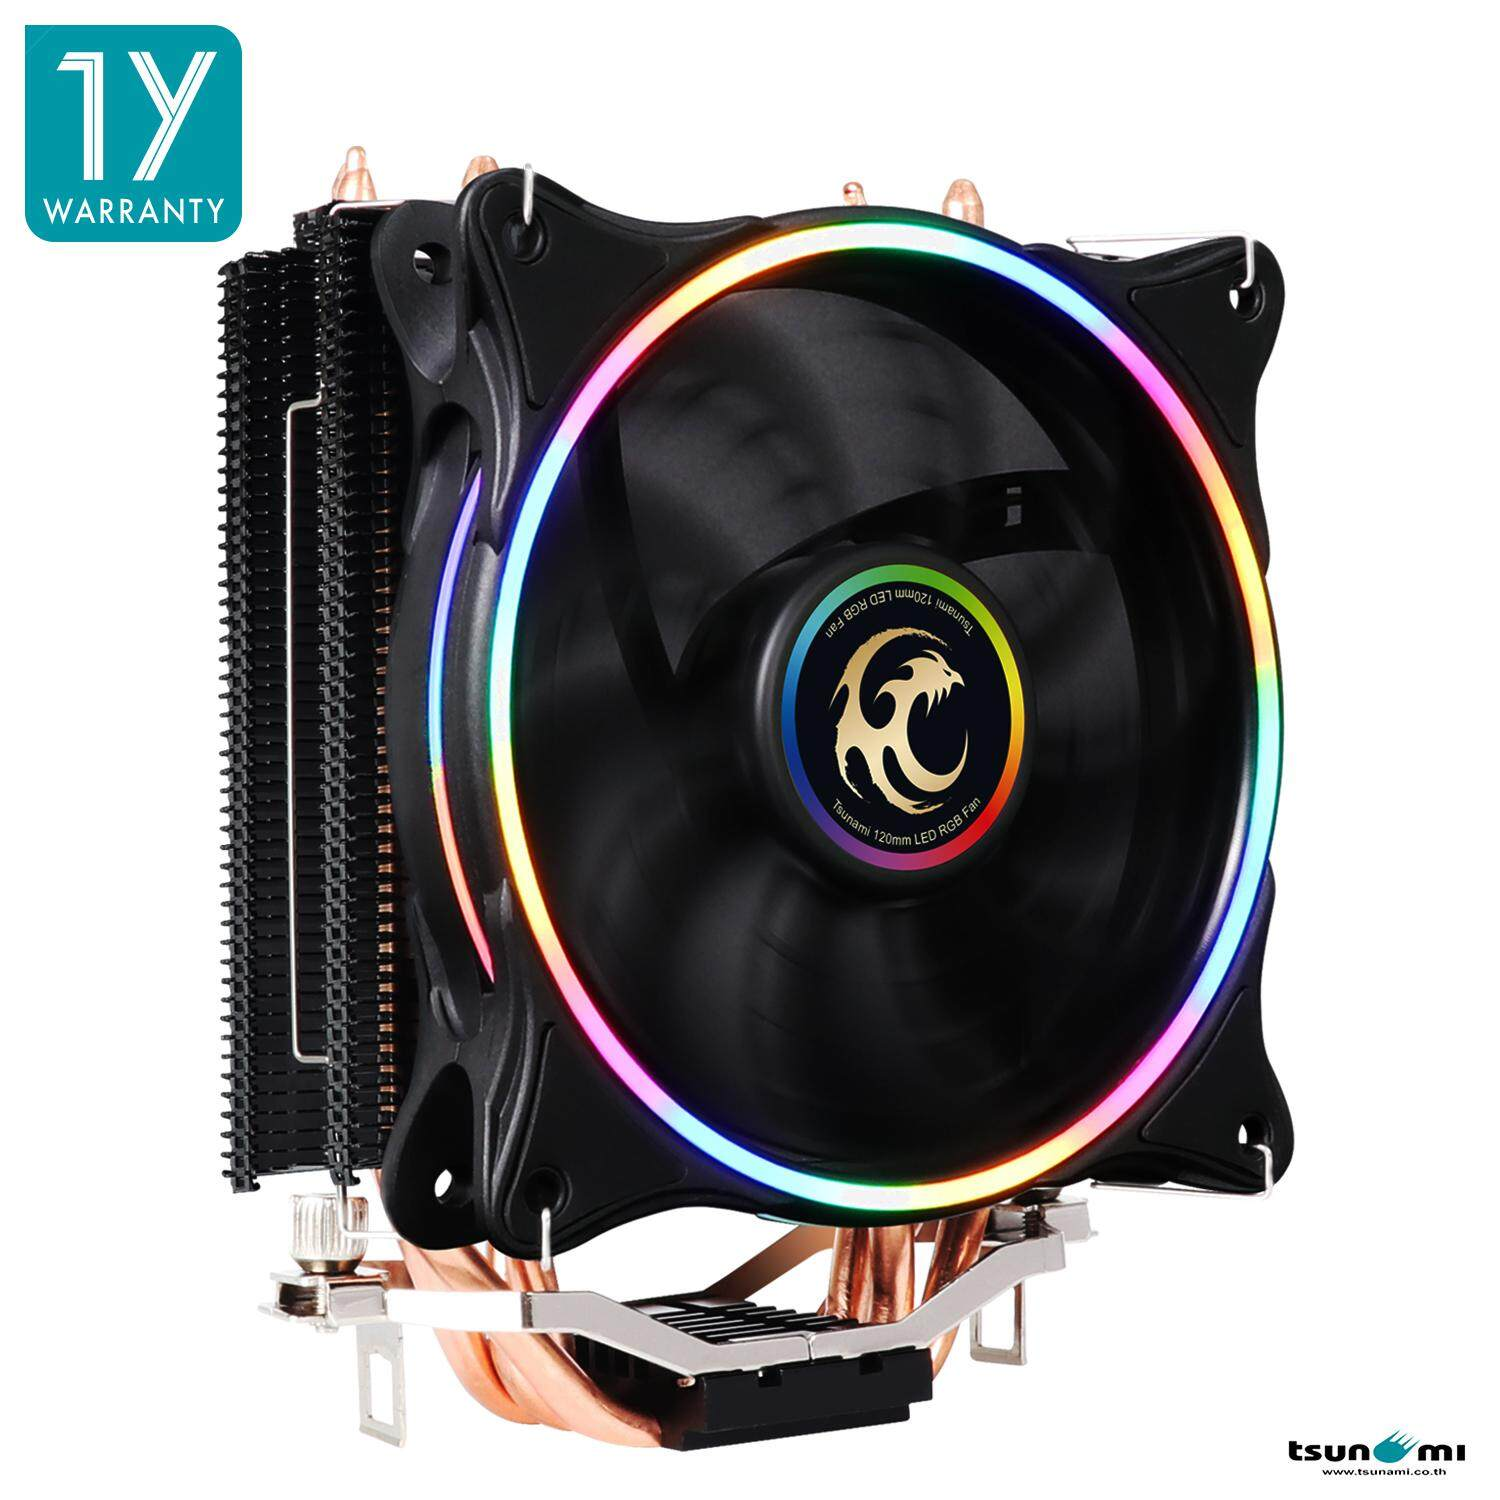 Tsunami Super Storm RGB 130W CPU COOLER TSS-2000  ( 4 HEAT PIPES + 12 CM NEON FAN) (P.W.M Function)(Intel/AMD Compatible)